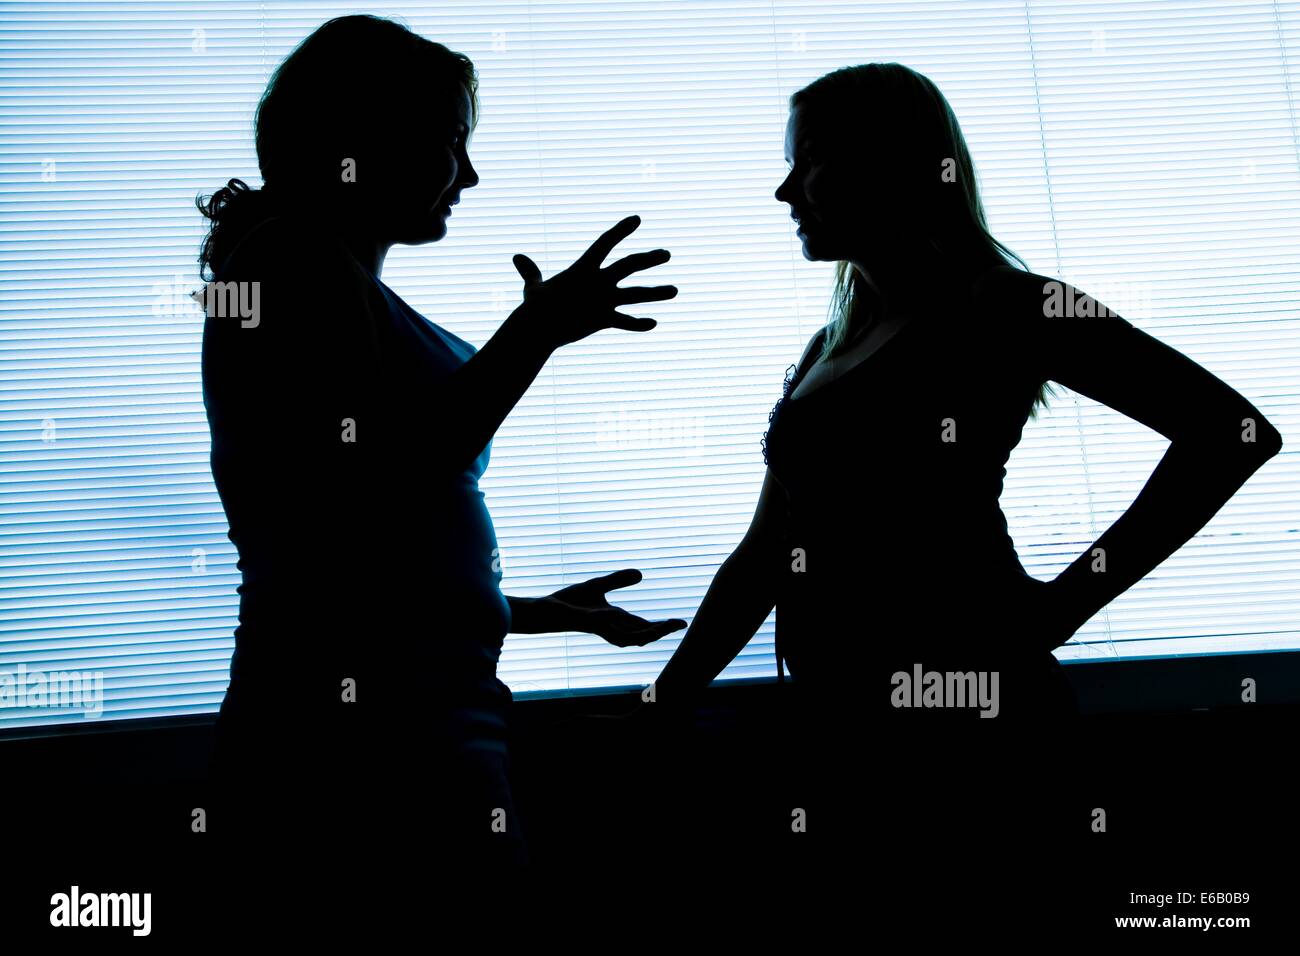 silhouette,interview,debate,gesturing - Stock Image